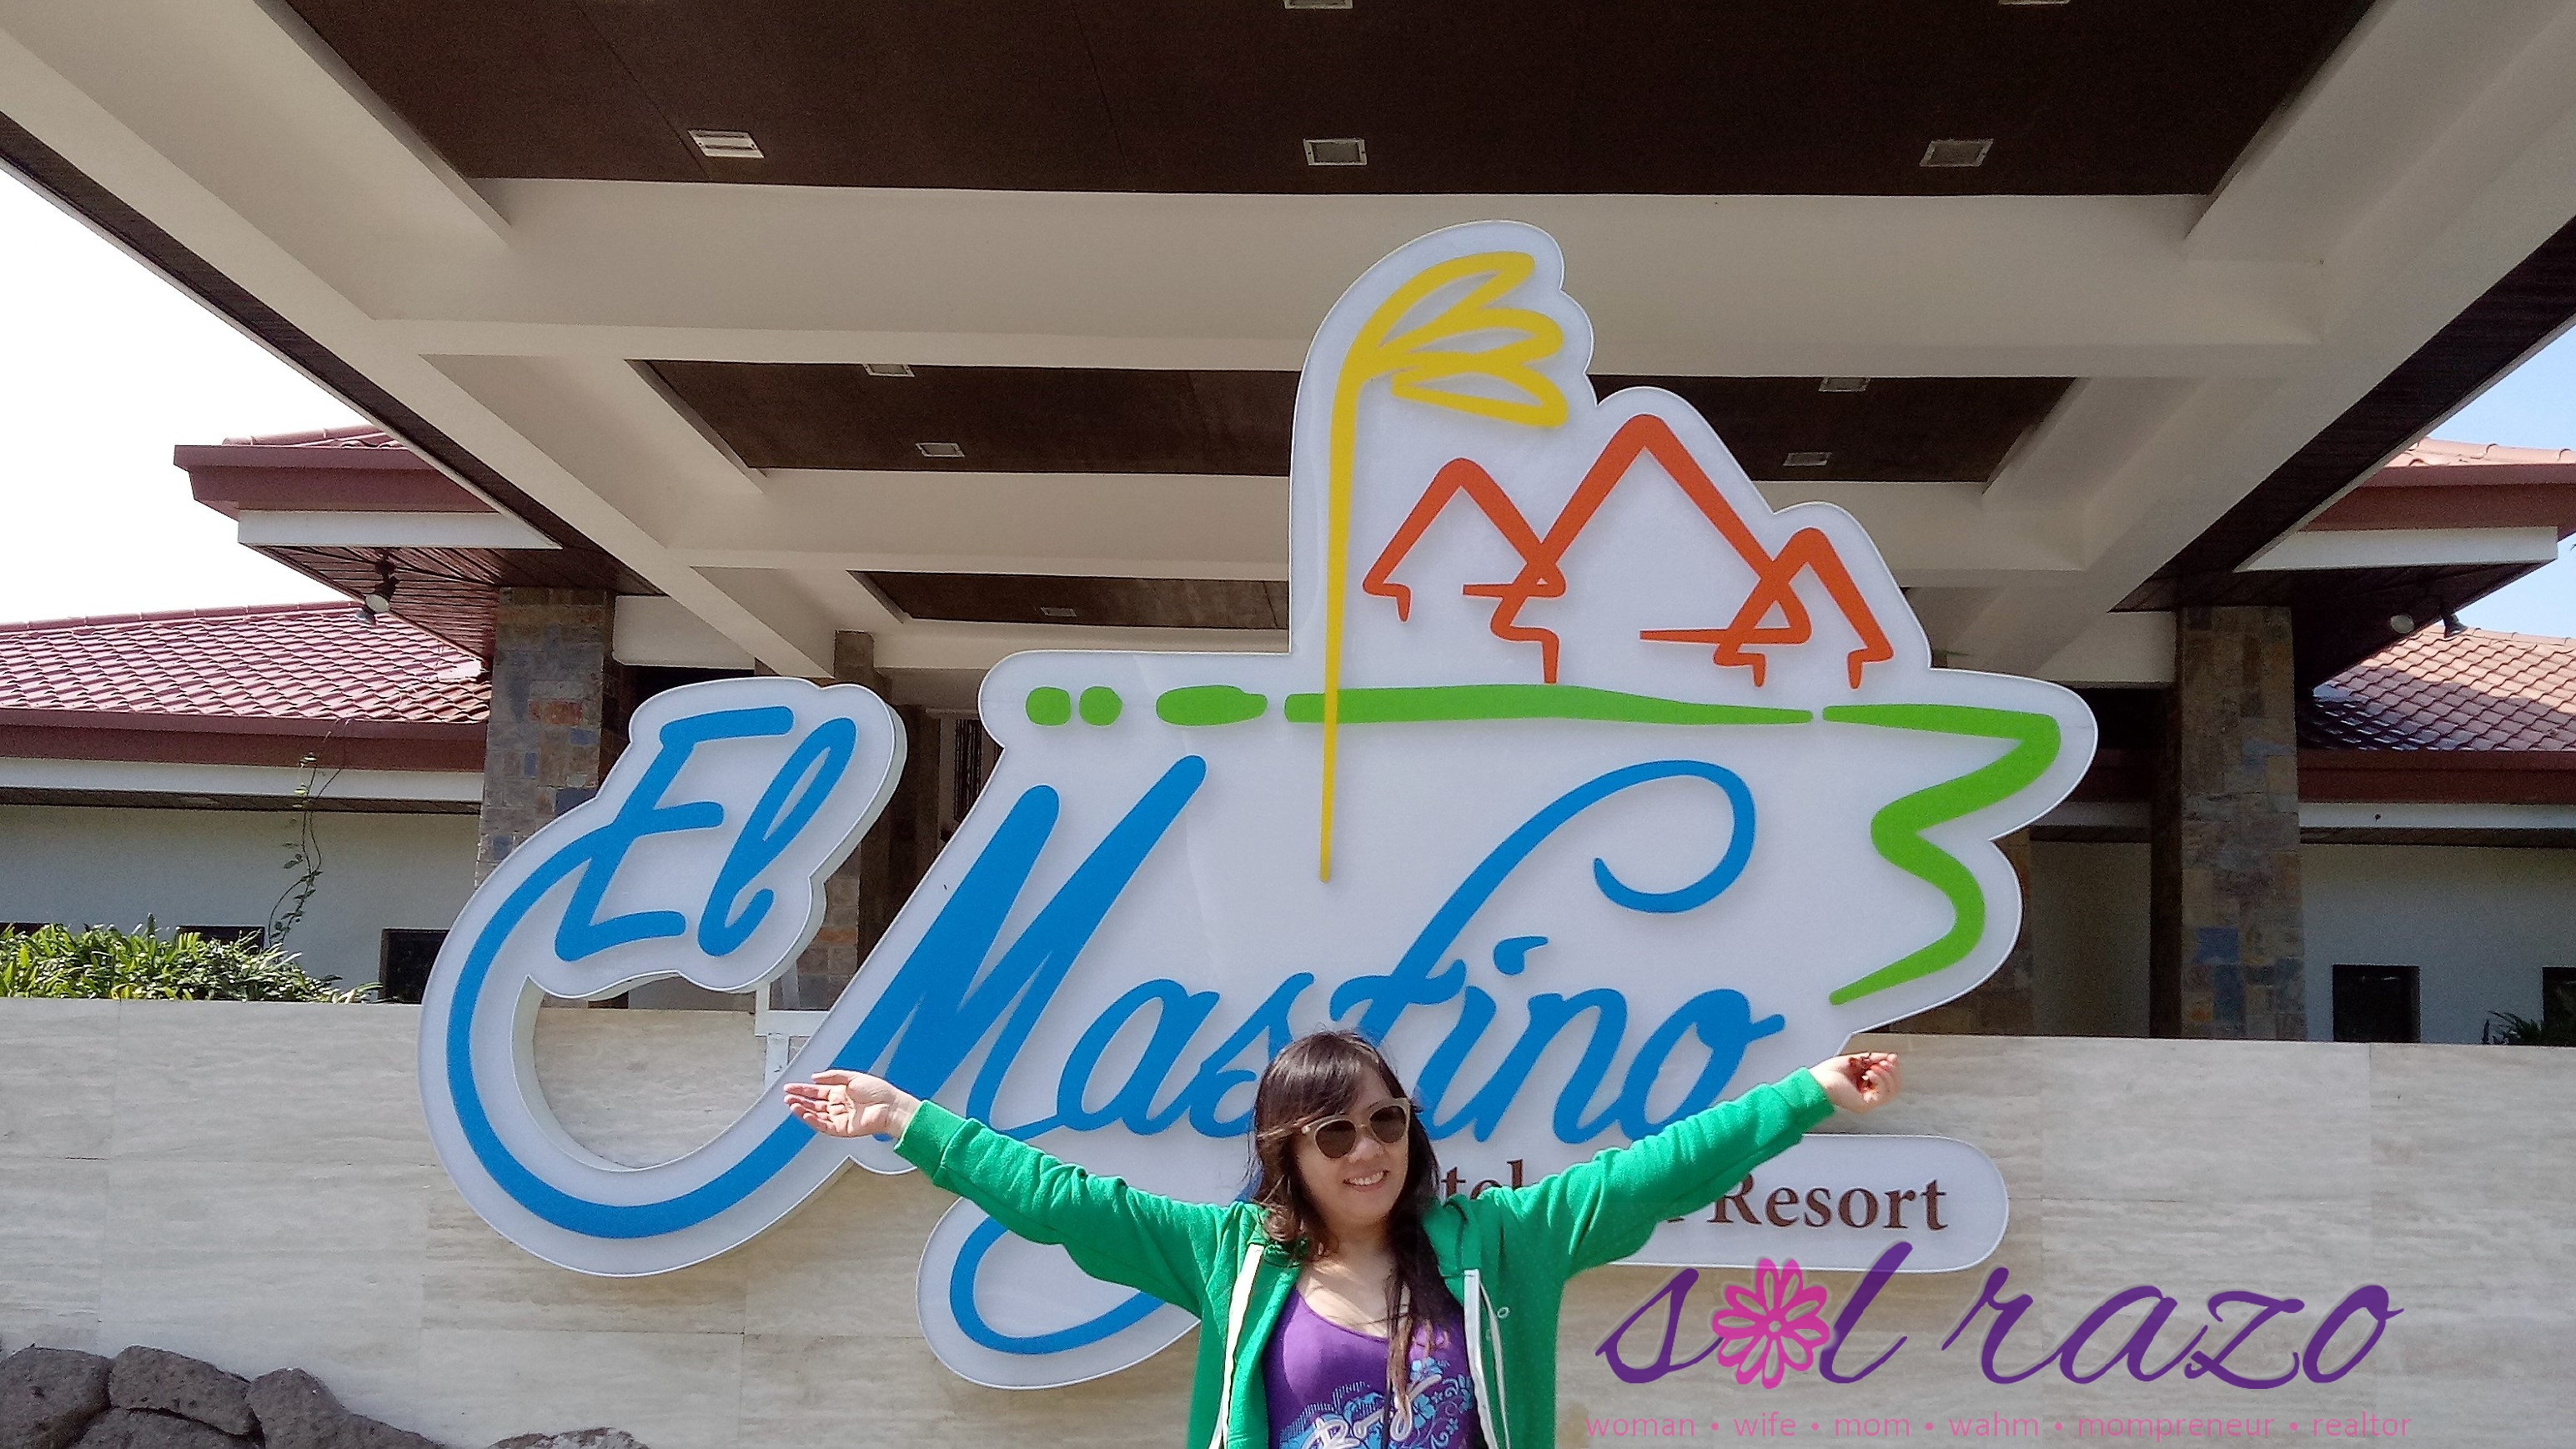 6 Reasons to visit and stay at El Masfino Hotel and Resort